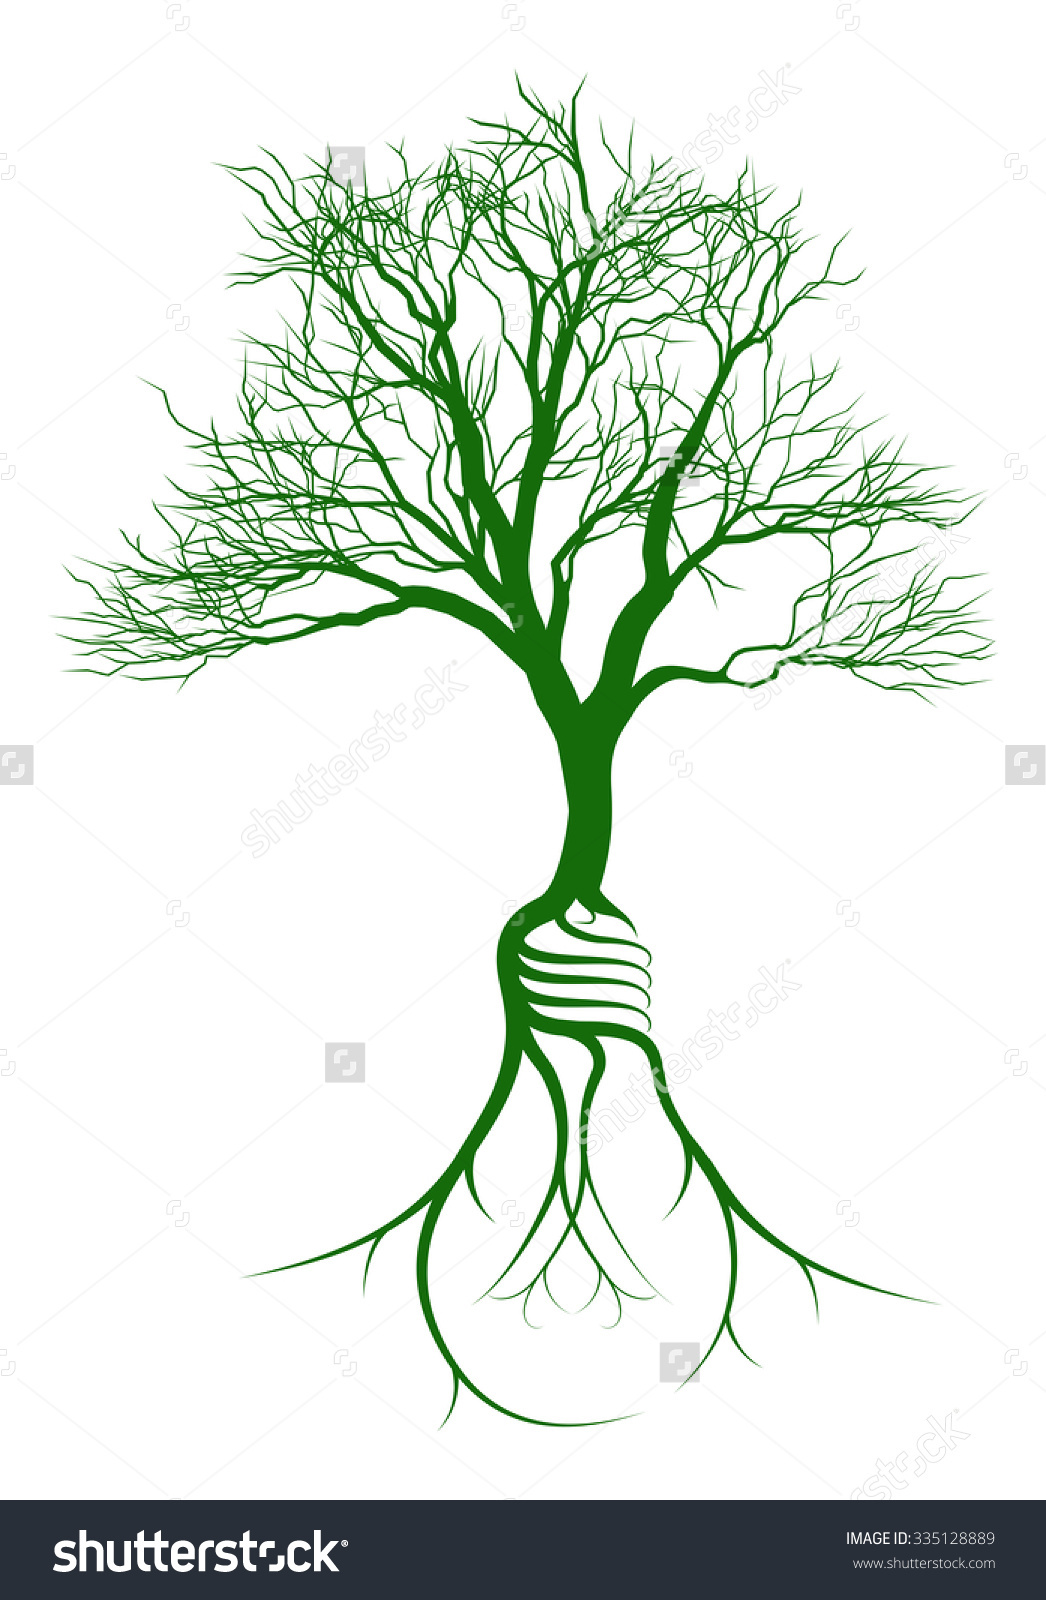 Tree Growing Light Bulb Shaped Roots Stock Illustration 335128889.